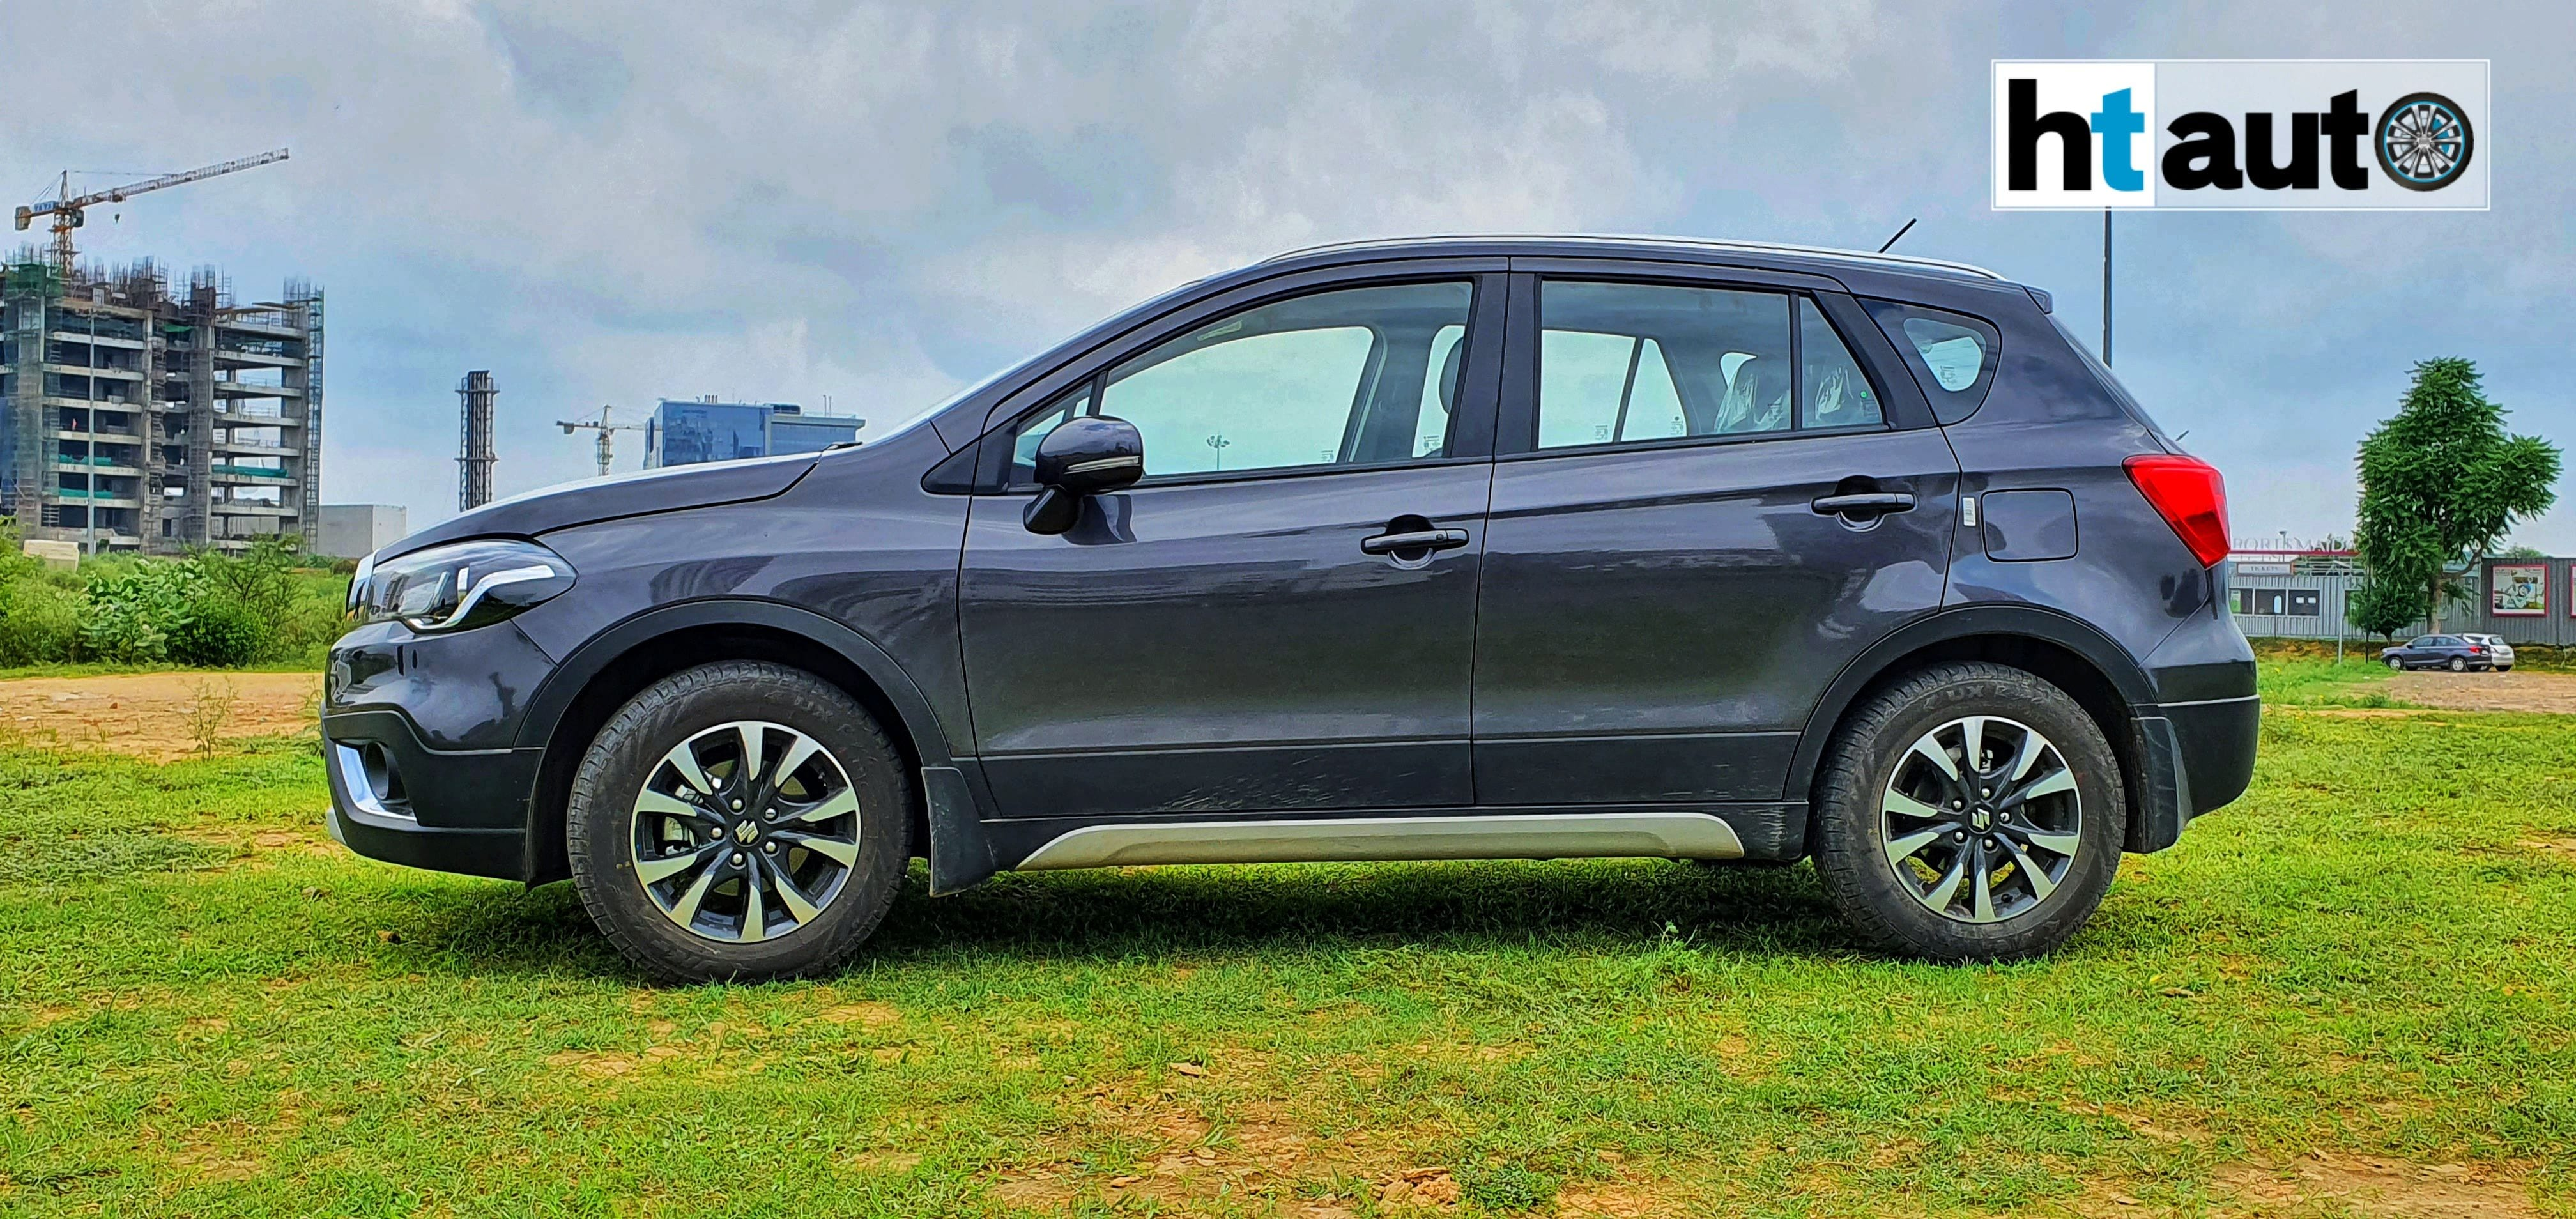 Pricing of the 2020 S-Cross starts at  <span class='webrupee'>₹</span>8.39 lakh (ex showroom) and goes up to  <span class='webrupee'>₹</span>12.39 lakh (ex showroom) for the Alpha automatic option. (HTAuto/Sabyasachi Dasgupta)